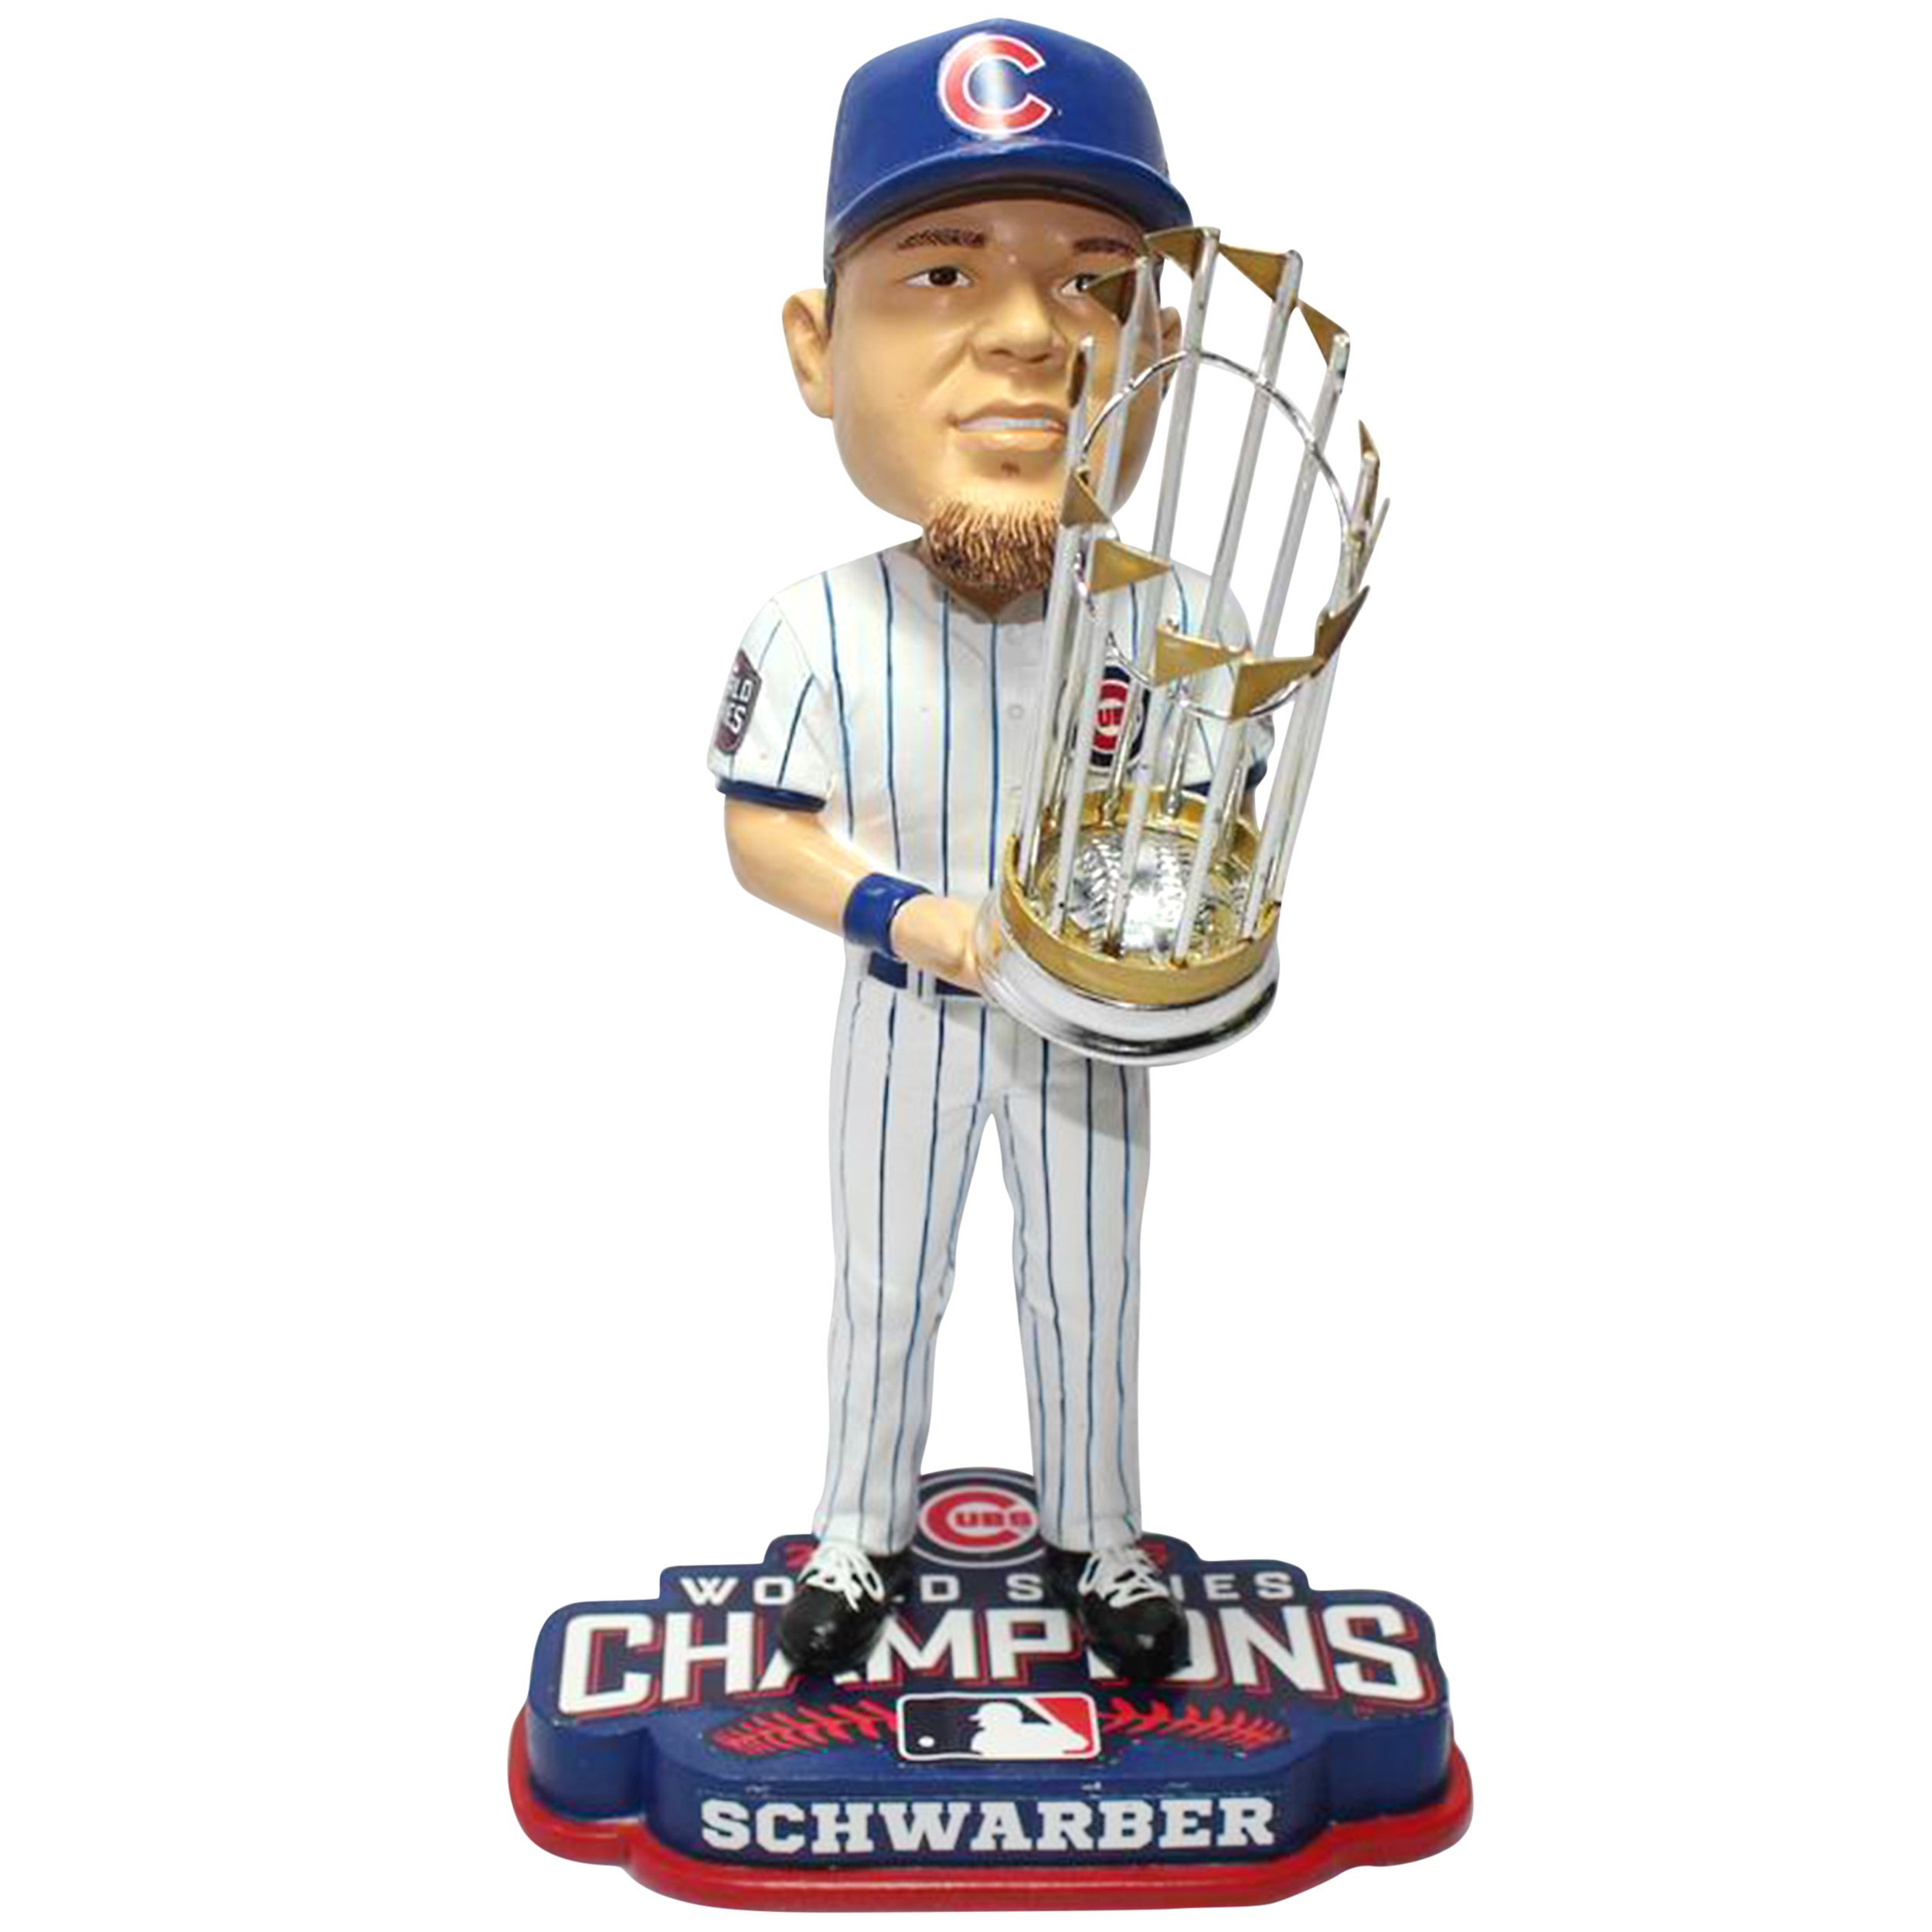 FOCO MLB Chicago Cubs Kyle Schwarber 2016 World Series Champions Bobblehead, White, 8''